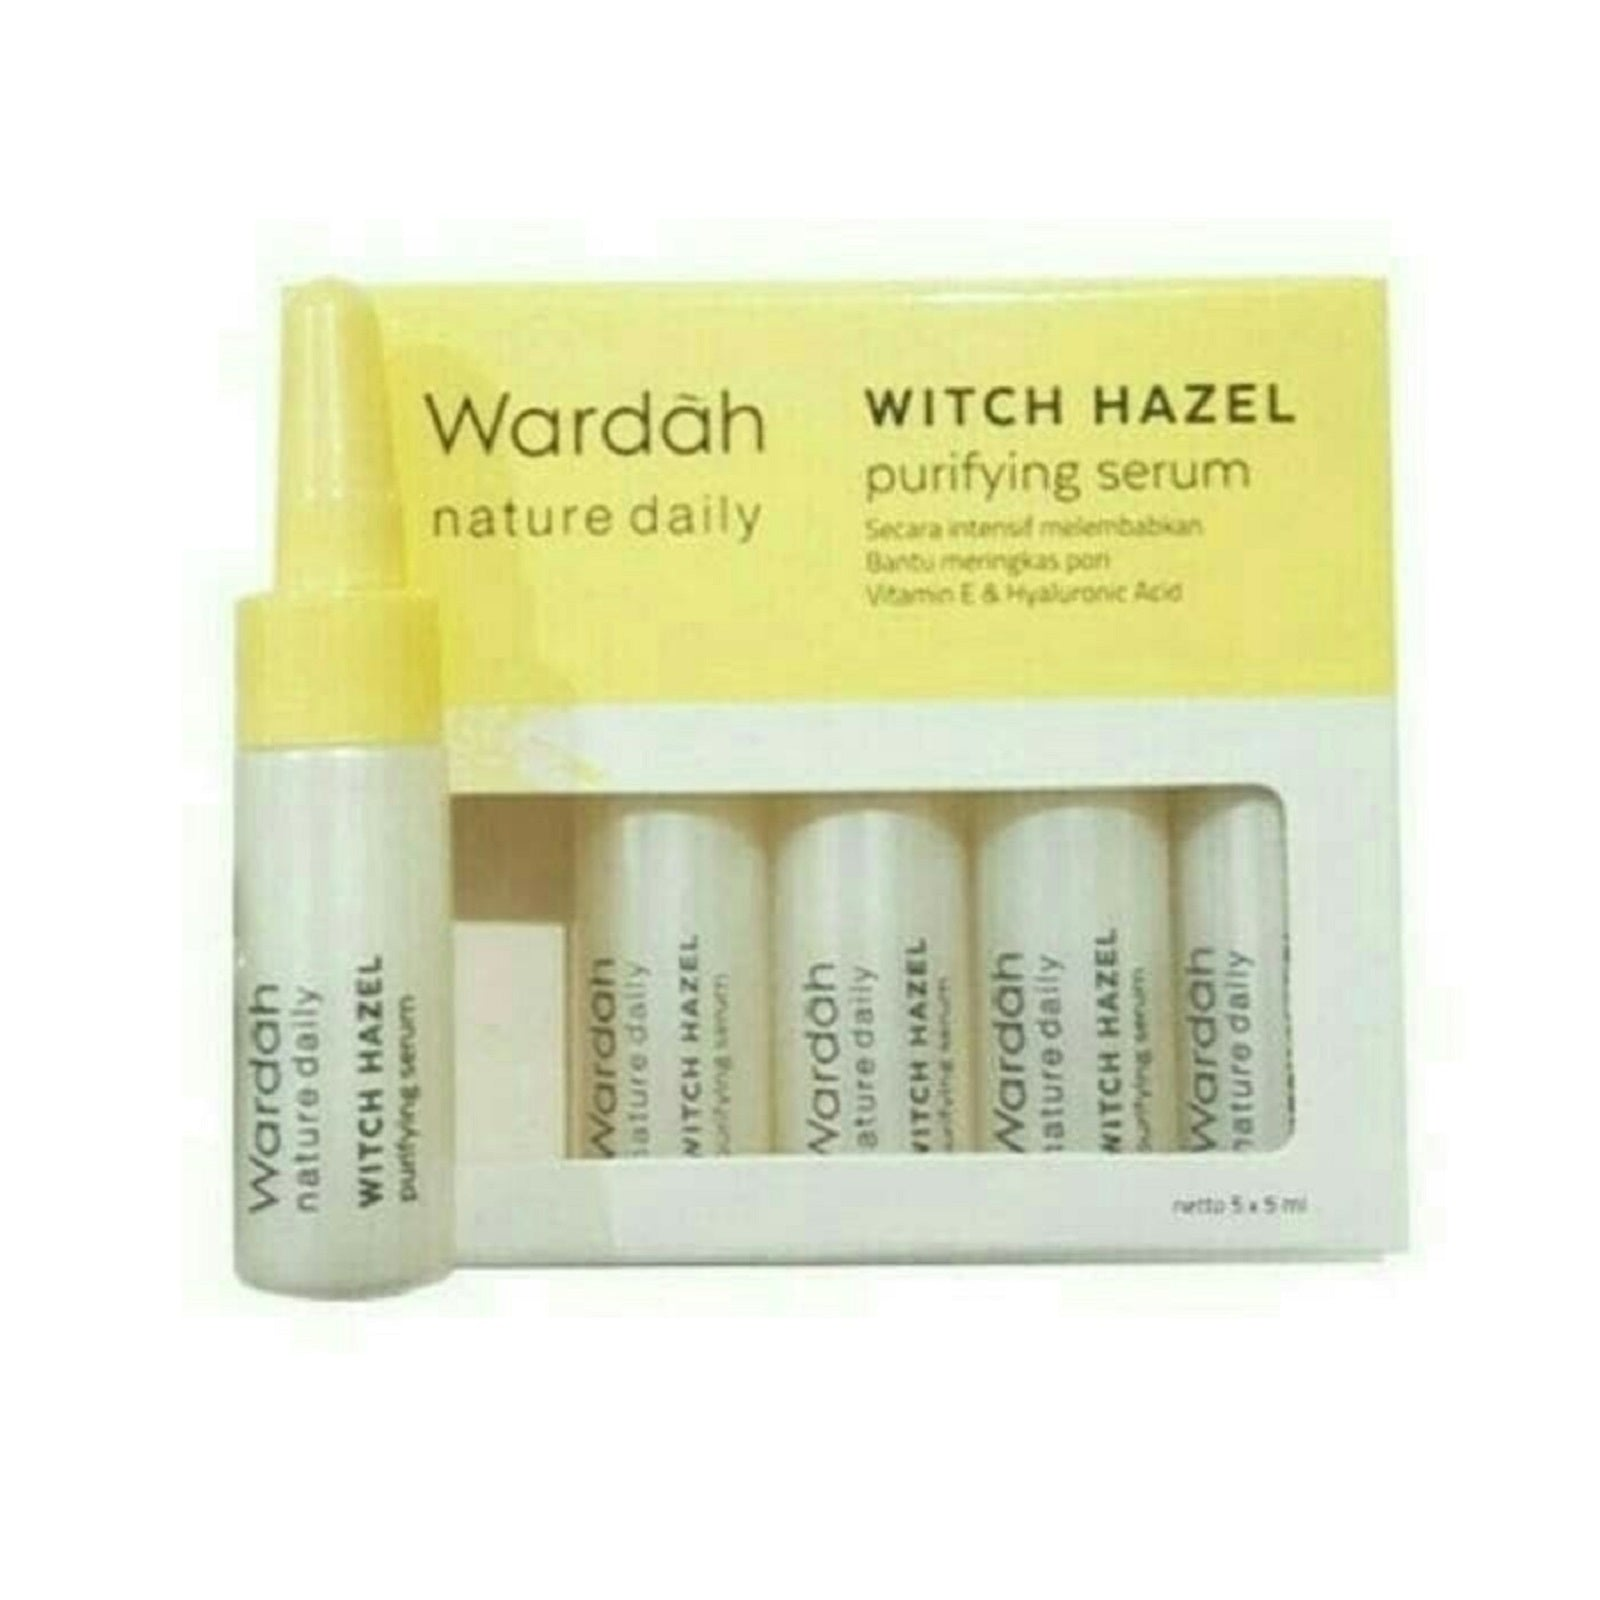 Wardah Nature Daily Witch Hazel Purifying Serum 5x50ml